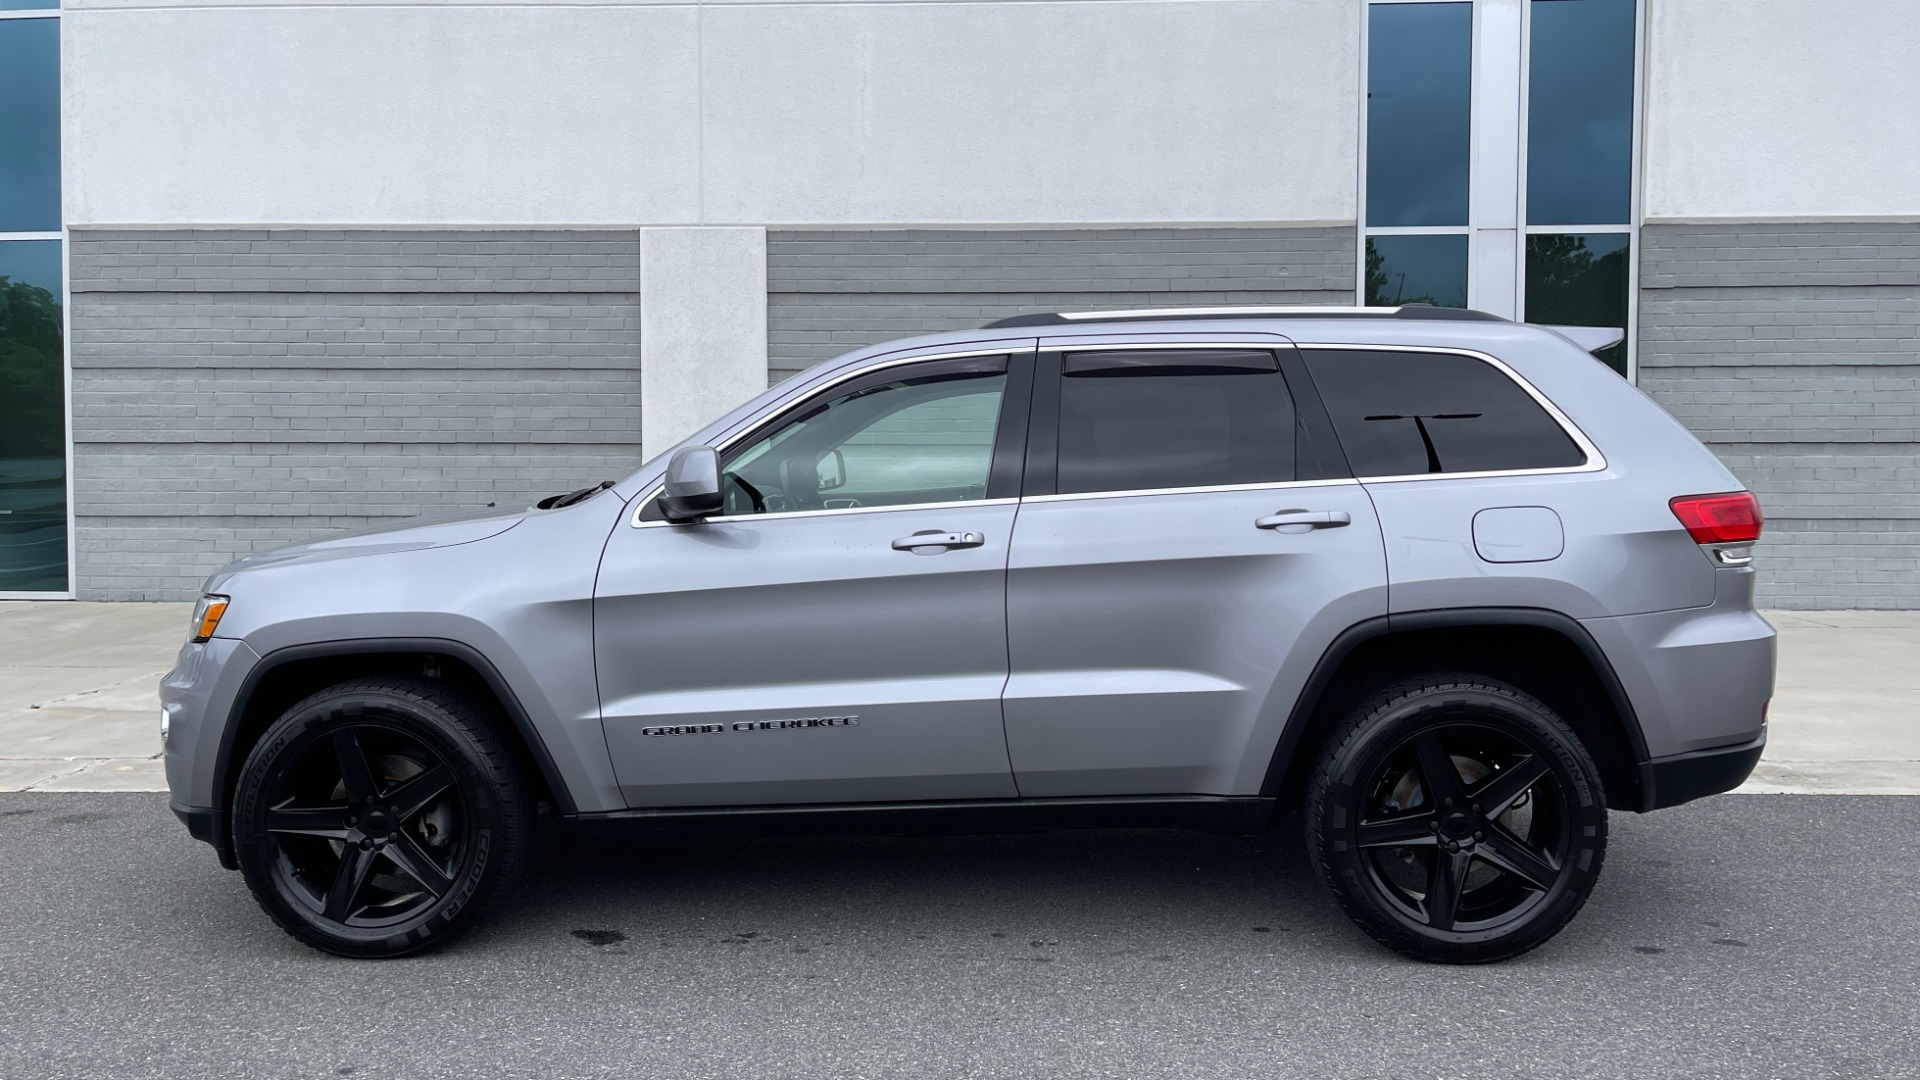 Used 2017 Jeep GRAND CHEROKEE LAREDO E 4X4 / KEYLESS-GO / 8.4IN TOUCH SCREEN / REARVIEW for sale $27,595 at Formula Imports in Charlotte NC 28227 4